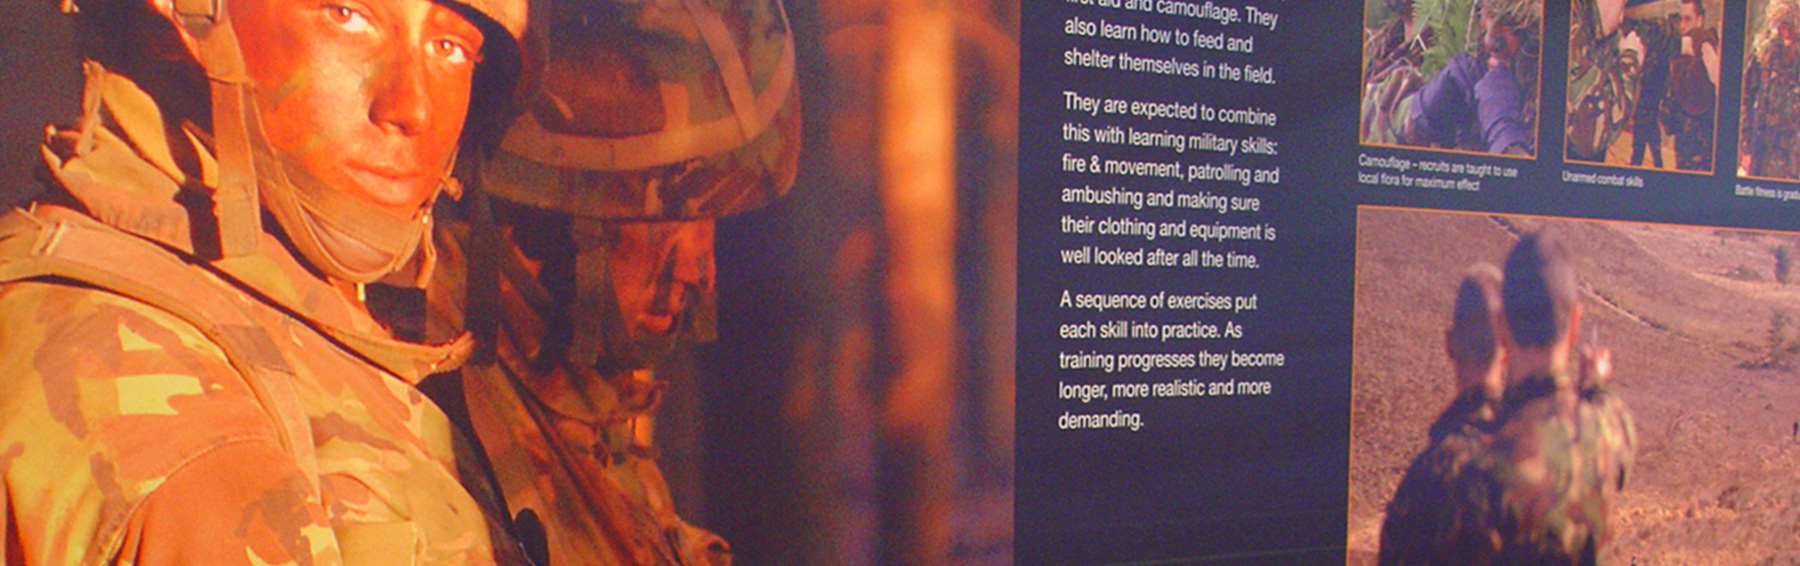 The Royal Marines Museum creative interpretation